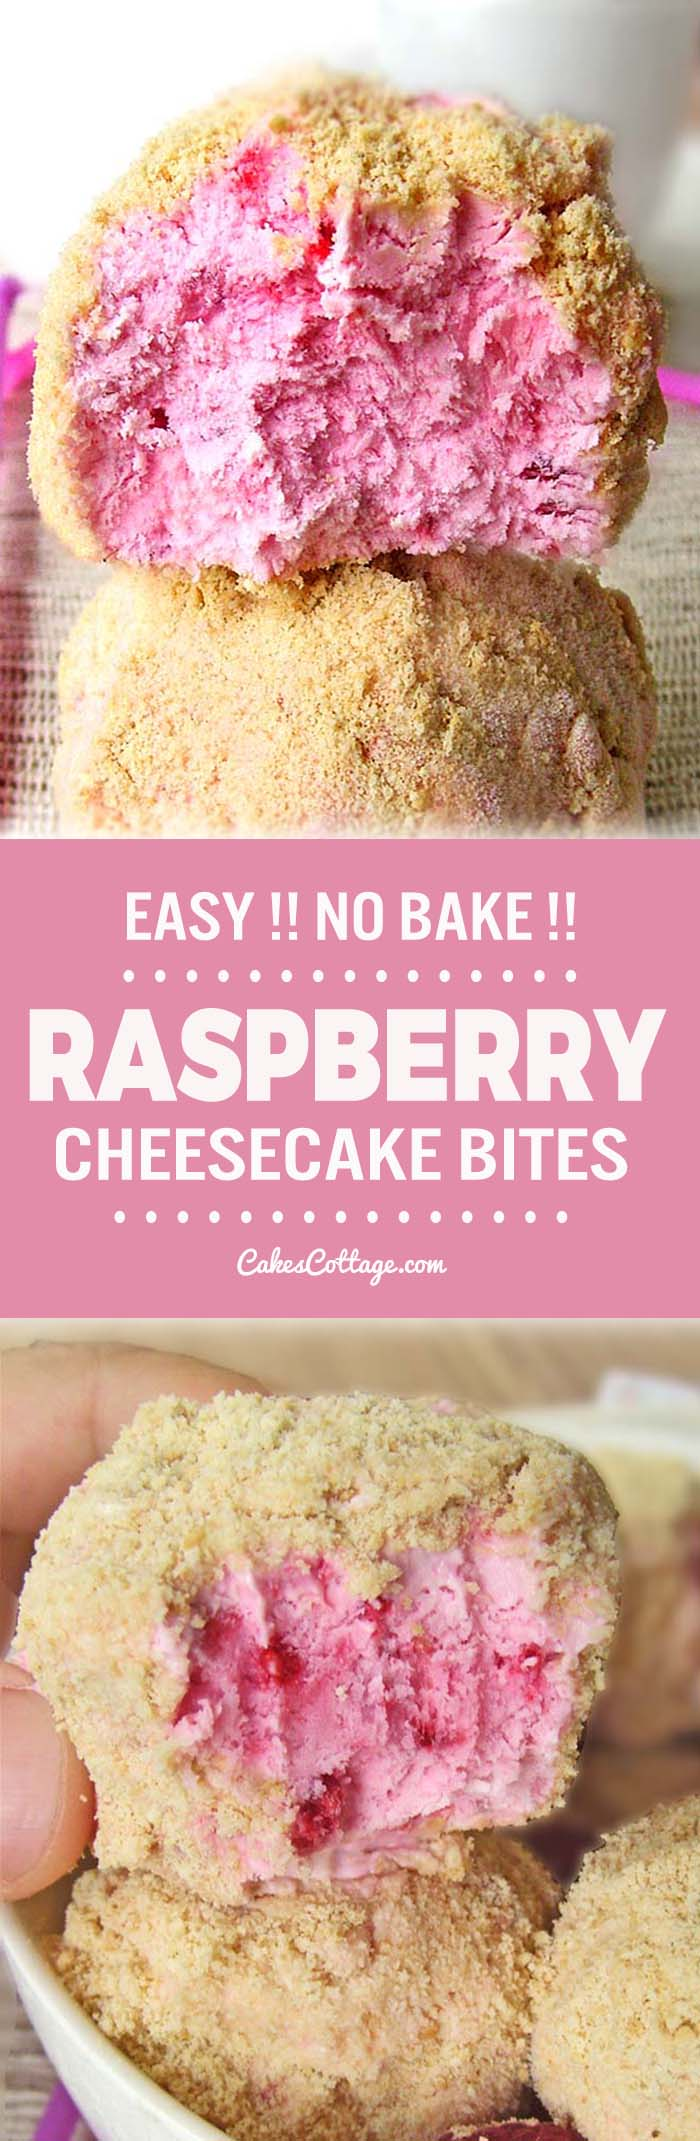 Perfect spring/summer treat for the cheesecake & raspberry lovers!